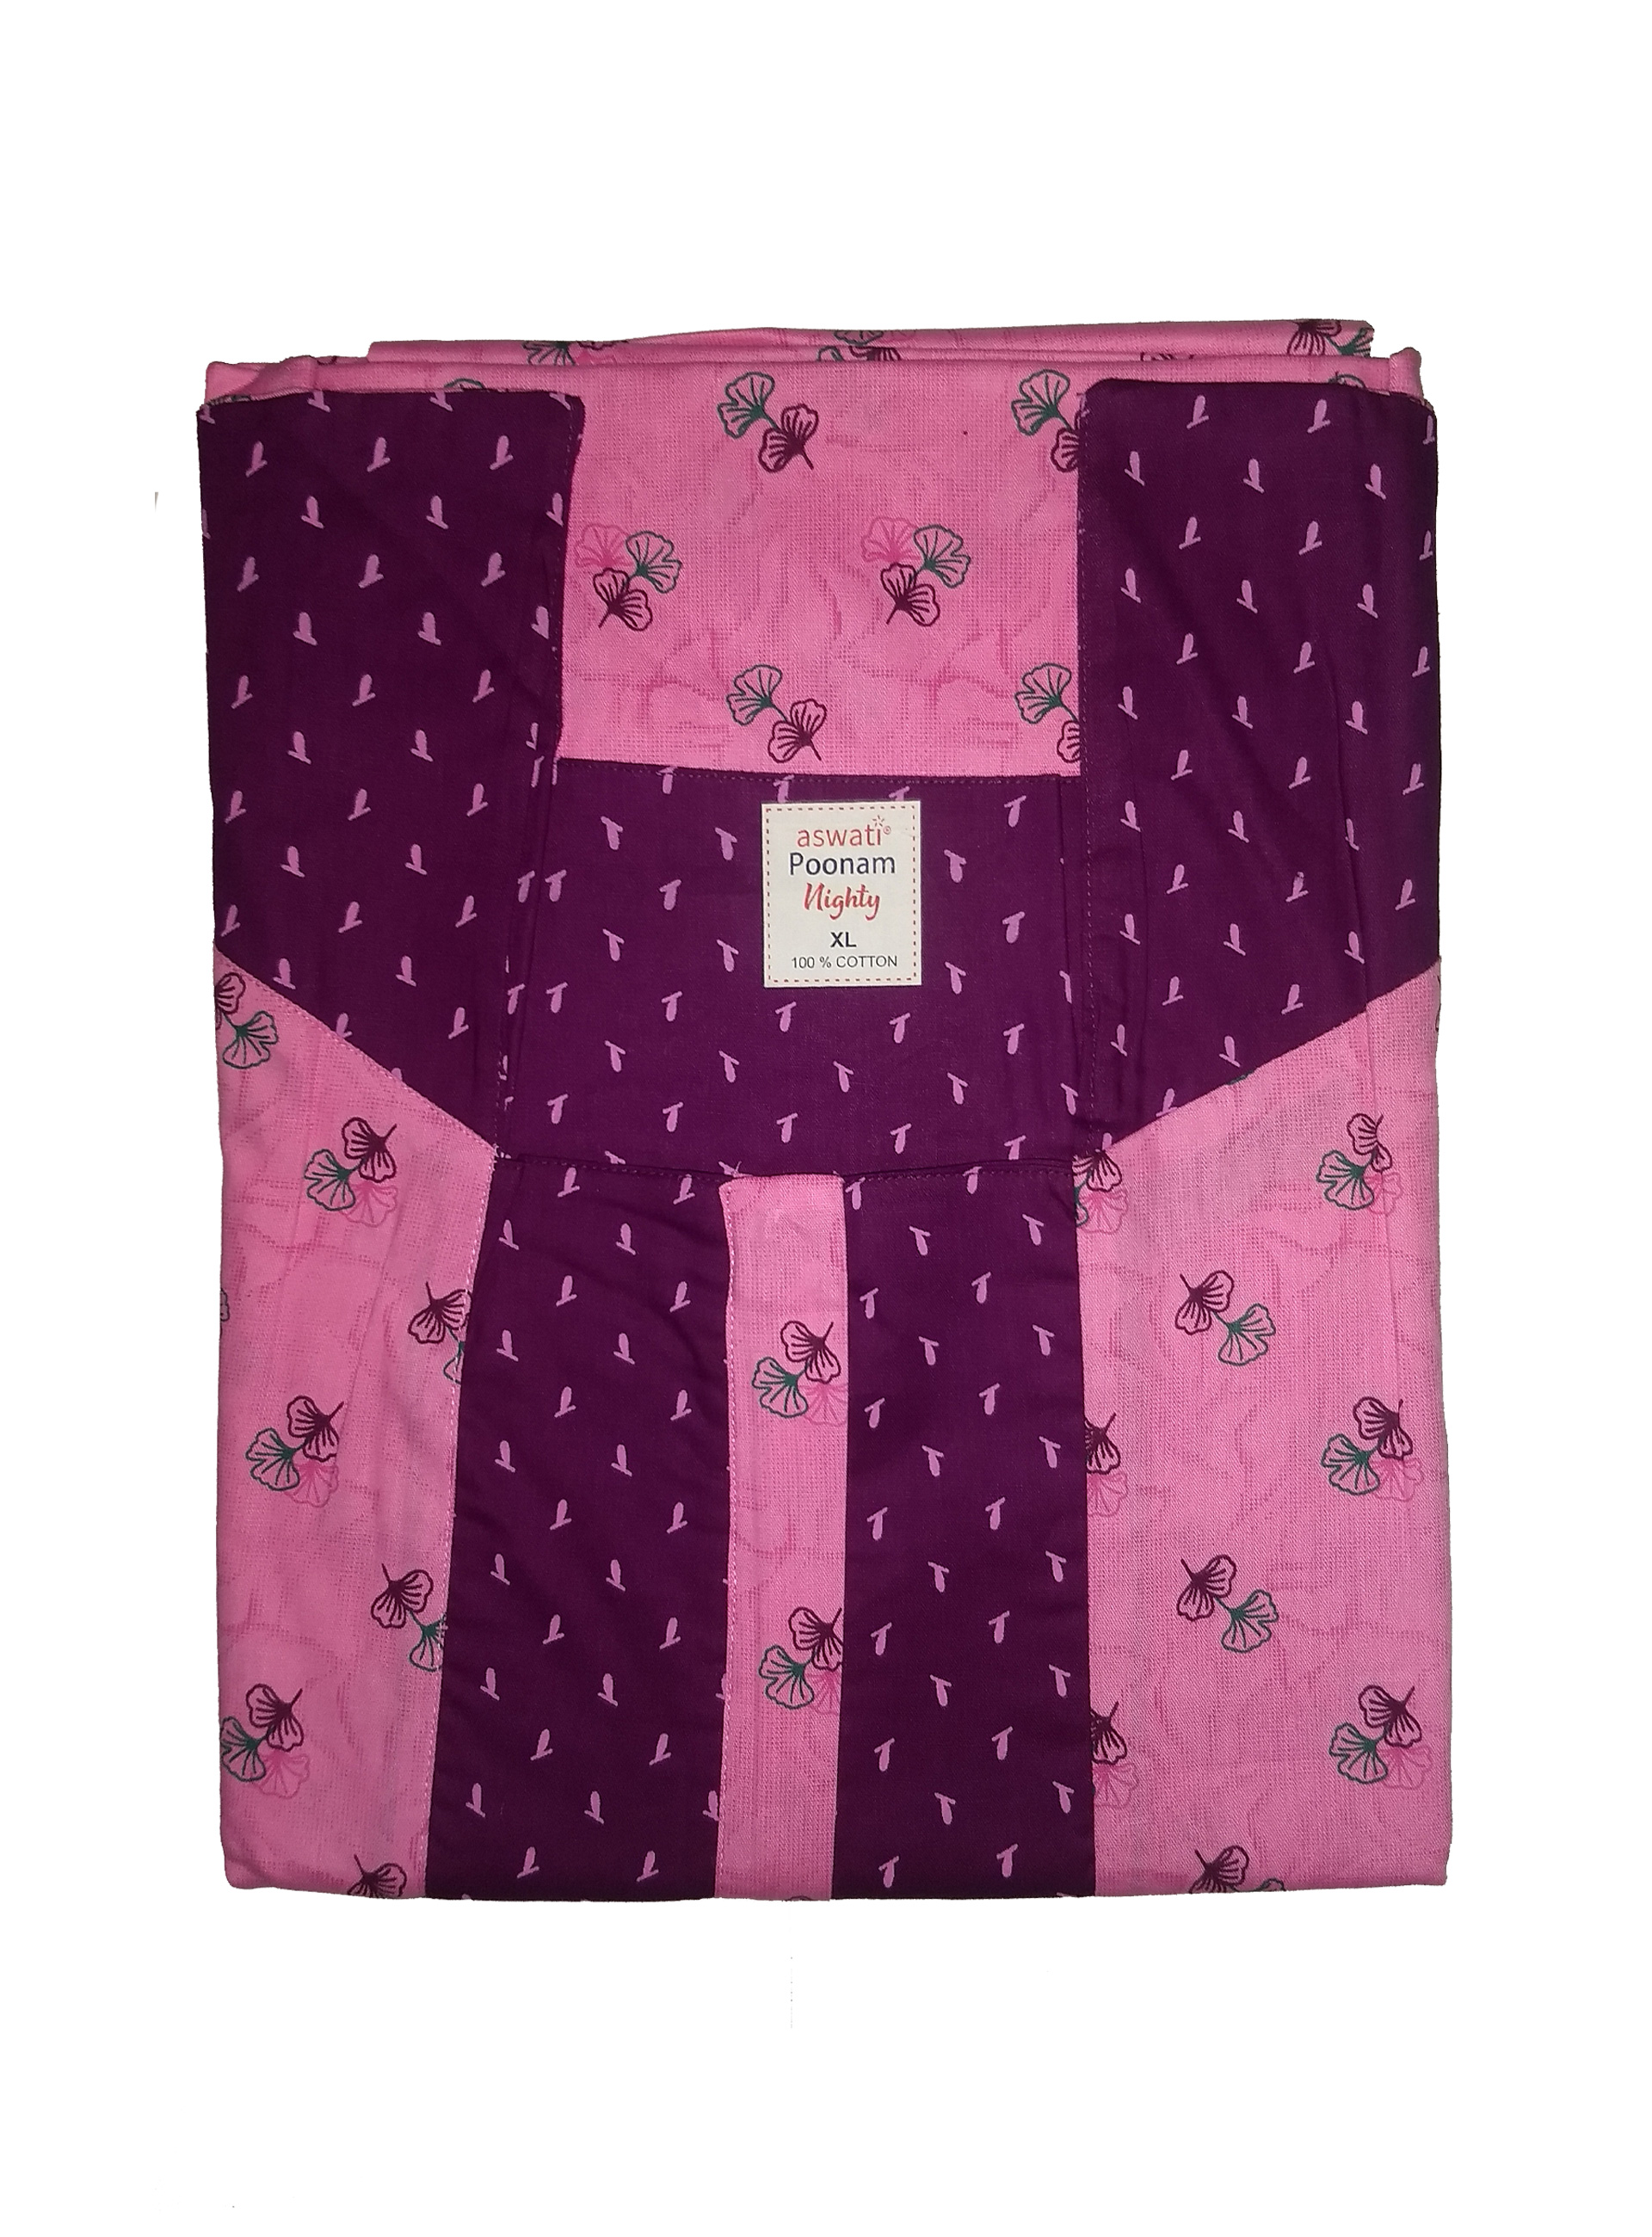 Poonam Nighty (XL) - Pink With Floral Pattern